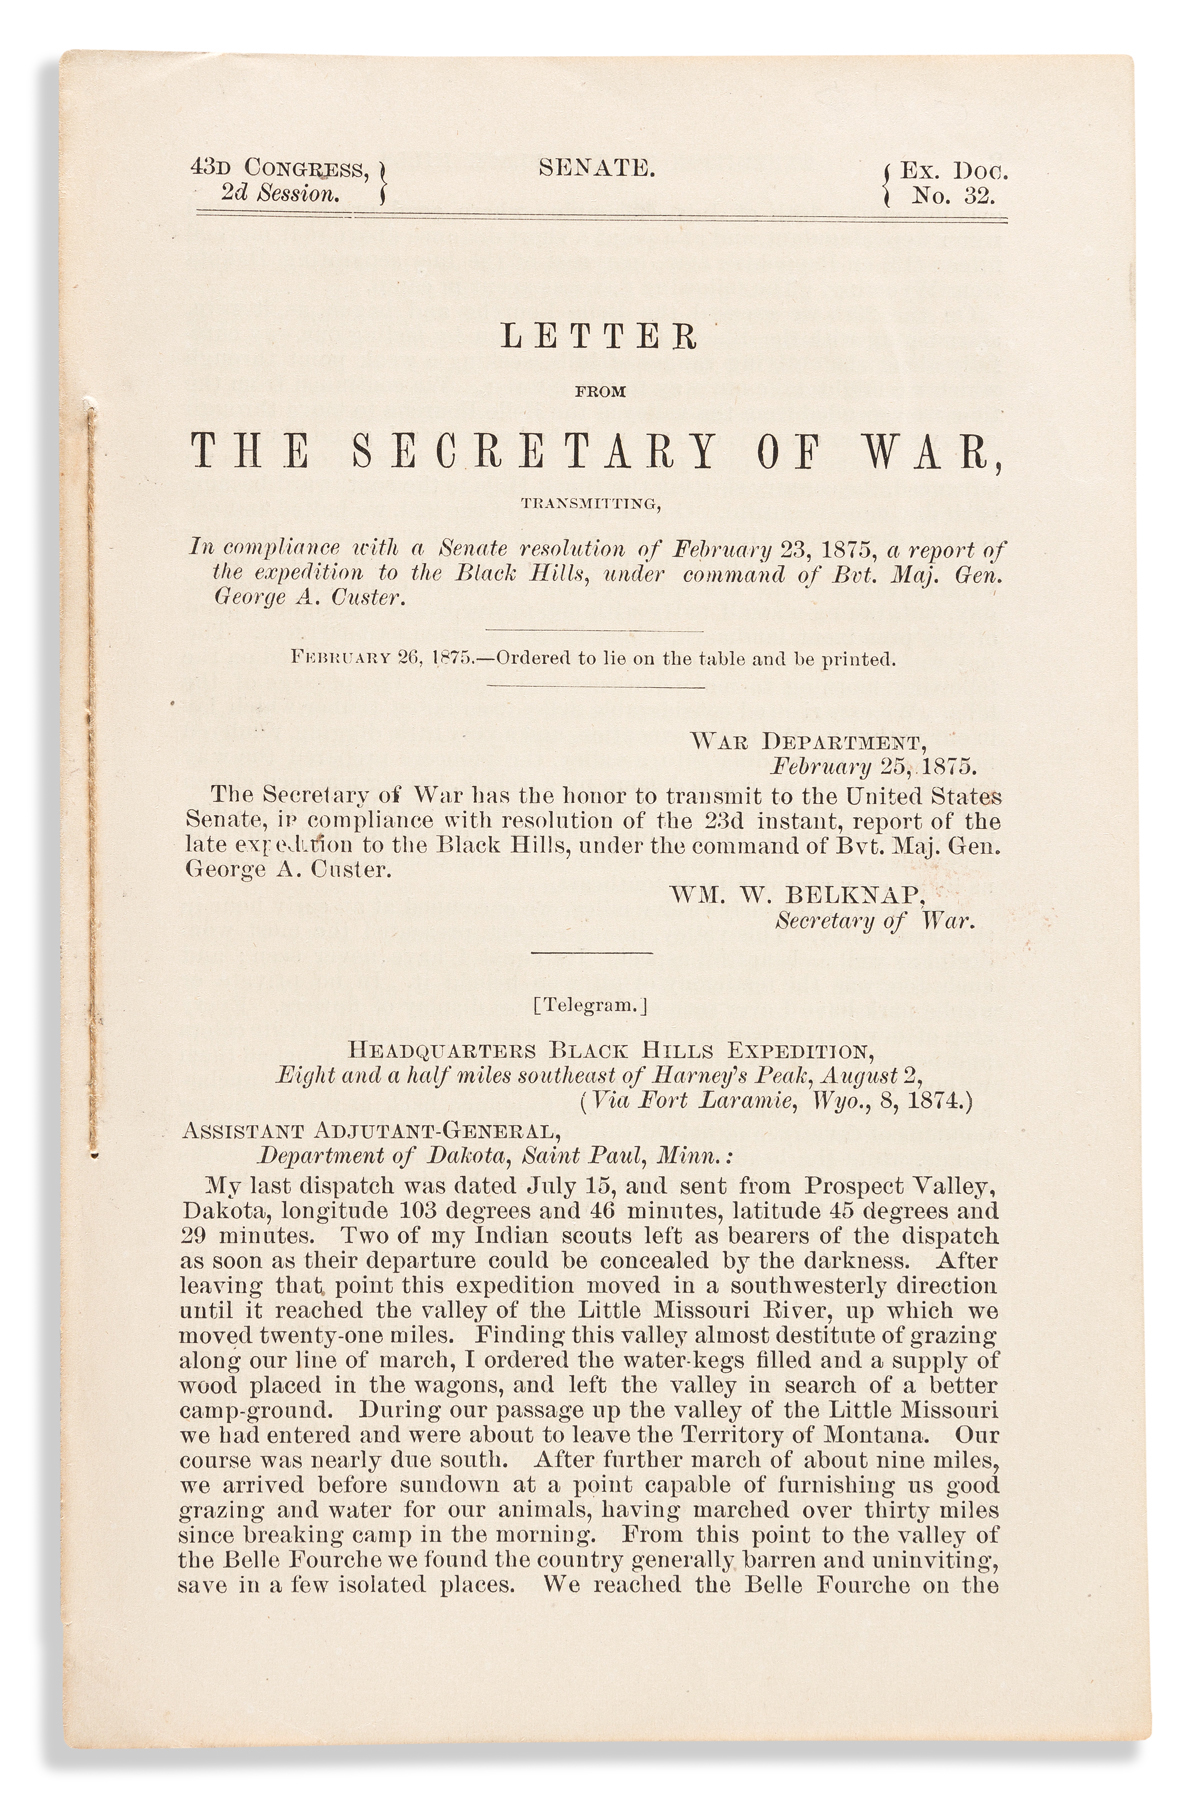 GEORGE A. CUSTER. Letter from the Secretary of War, Transmitting . . . a Report of the Expedition to the Black Hills.